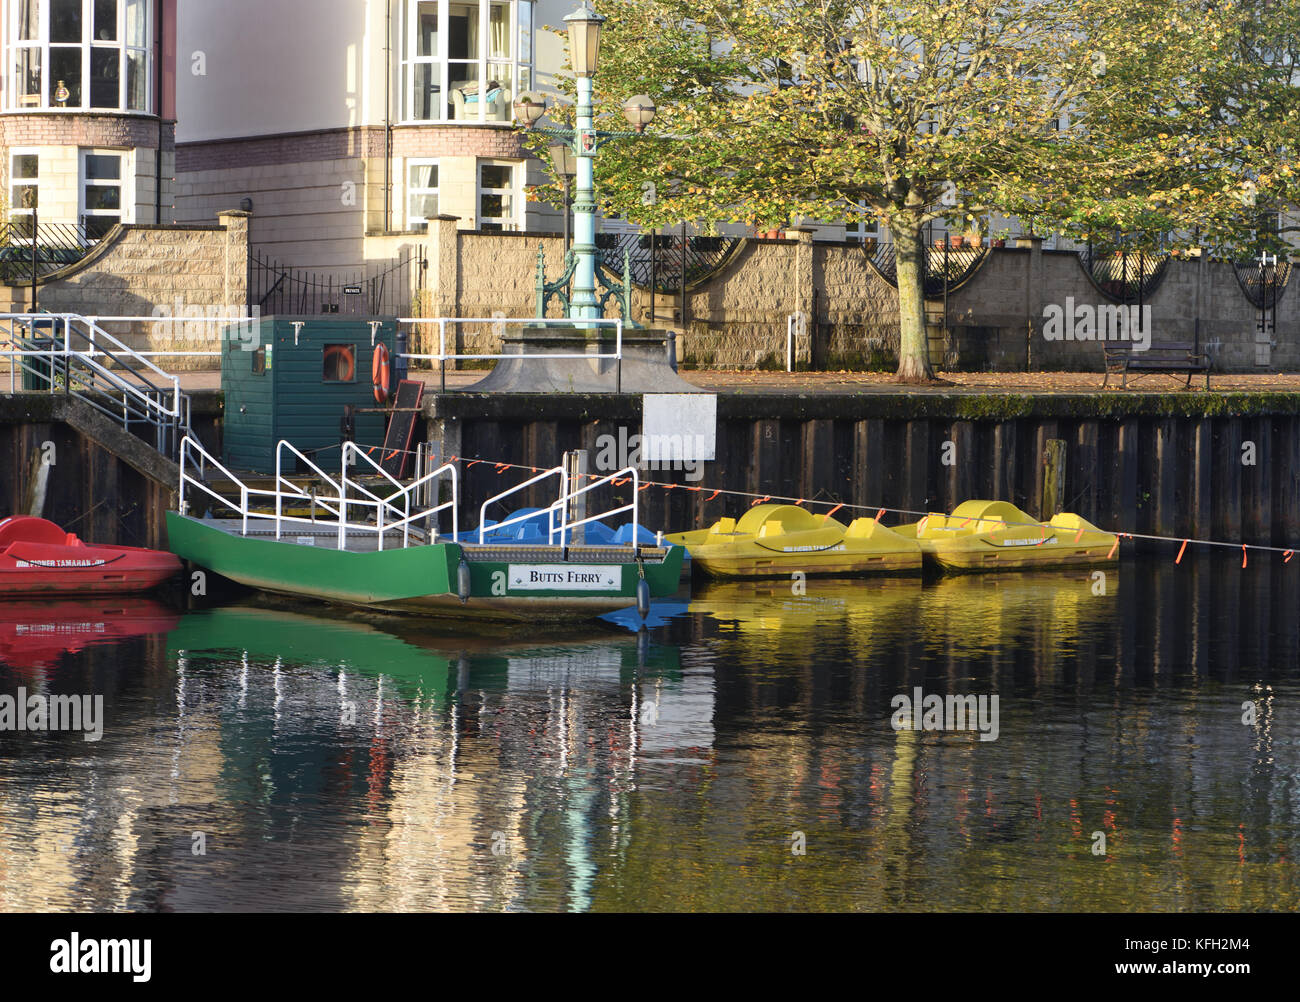 Butts Ferry is manually operated by hauling on a fixed cable. It crosses the River Exe at The Quay in Exeter. Exeter, - Stock Image